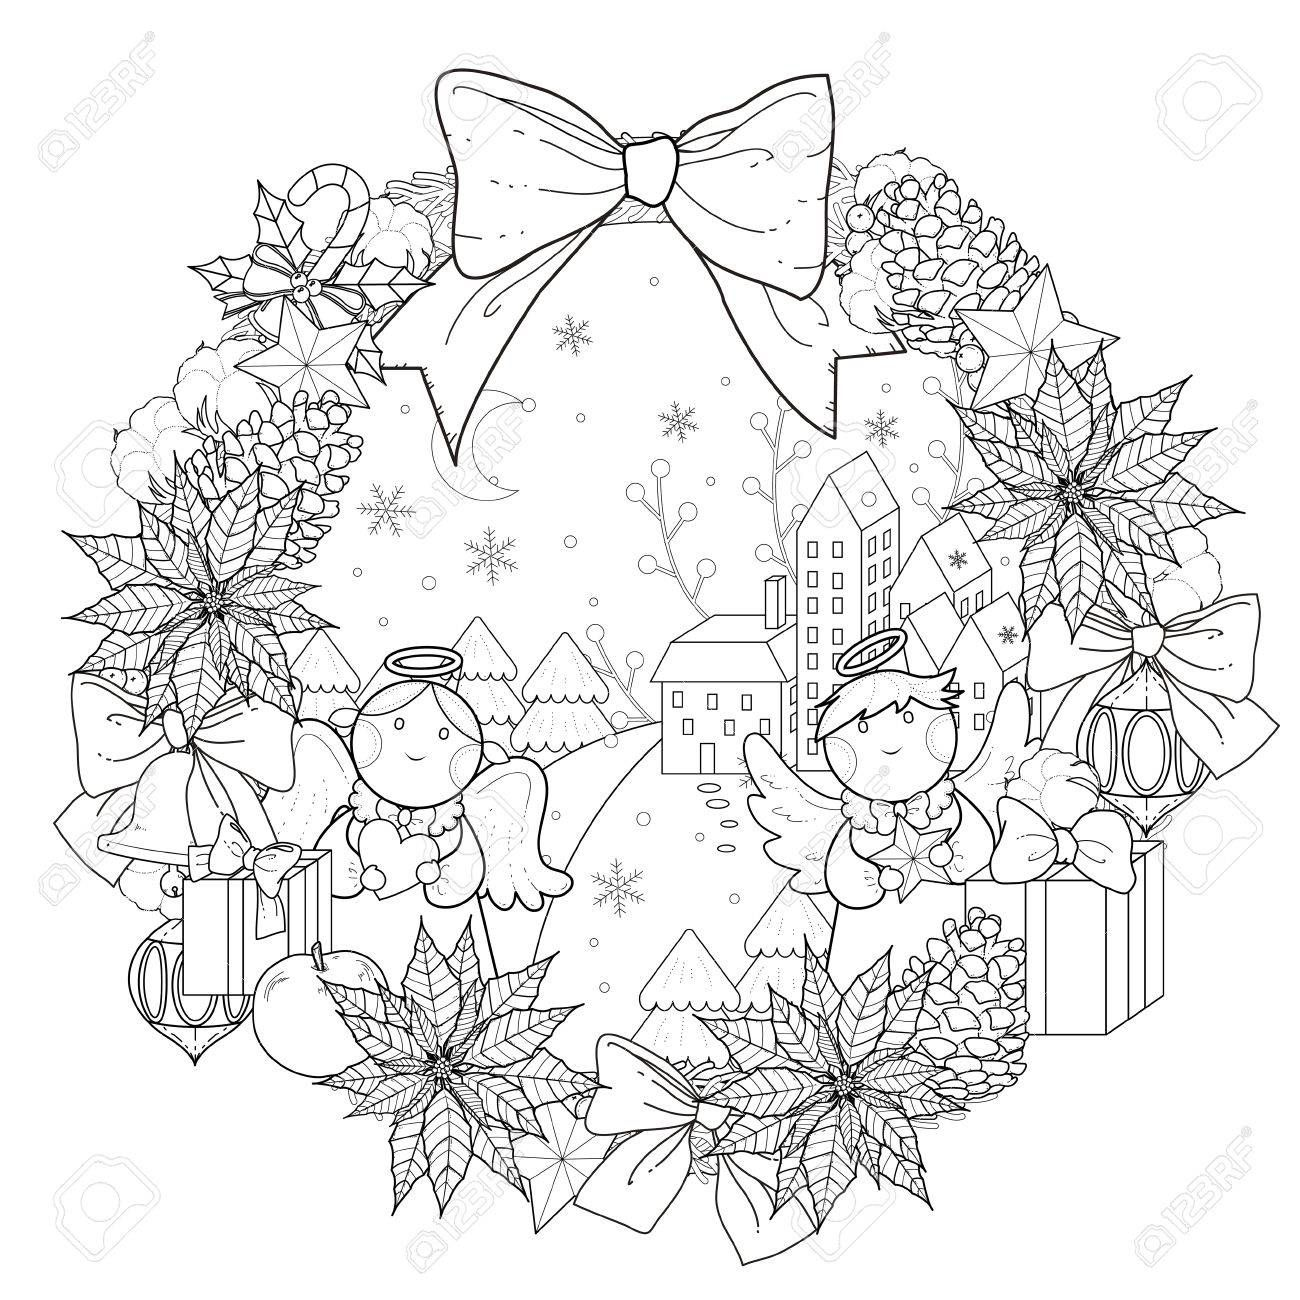 Christmas Wreath Coloring Sheet With Page Decorations In Exquisite Line